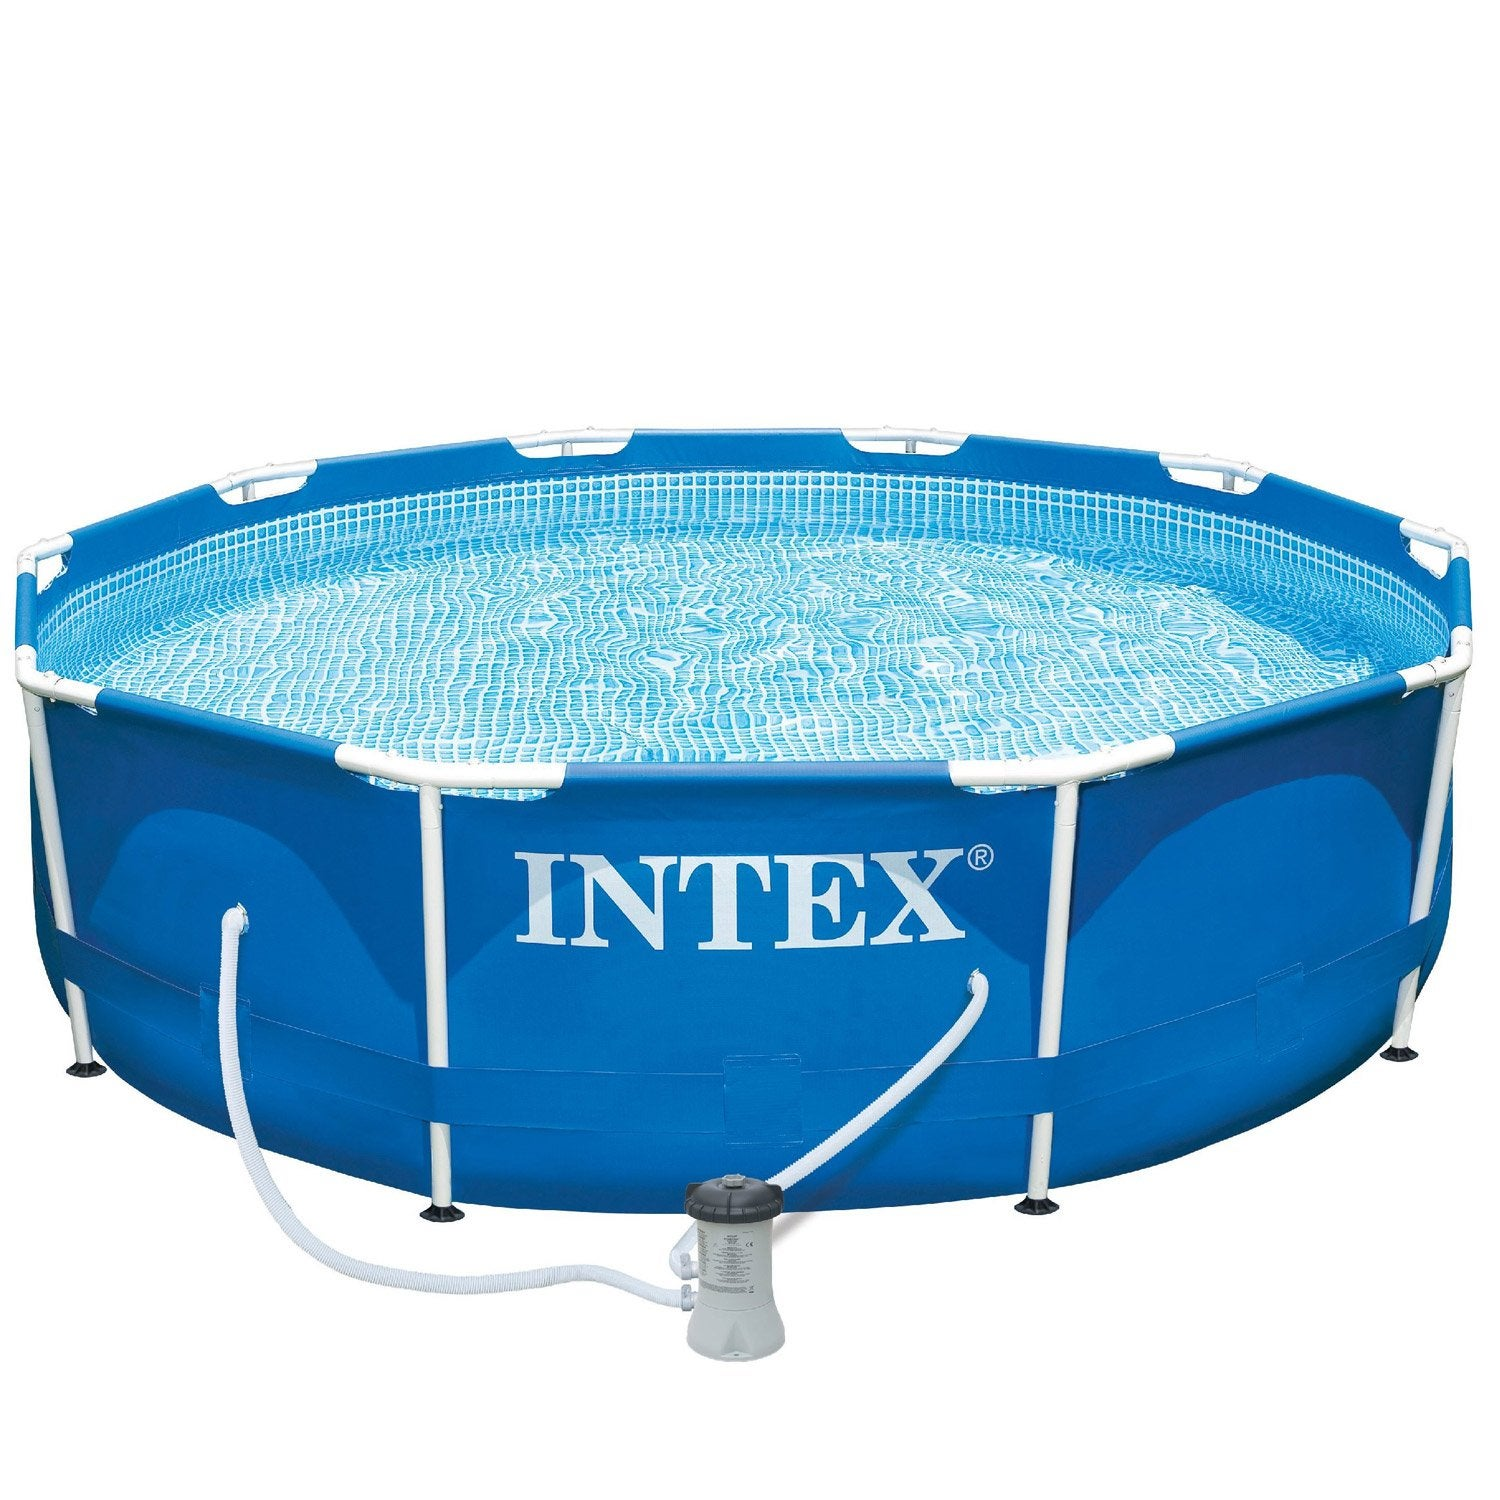 Piscine hors sol autoportante tubulaire metal frame intex for Piscine intex 5 m